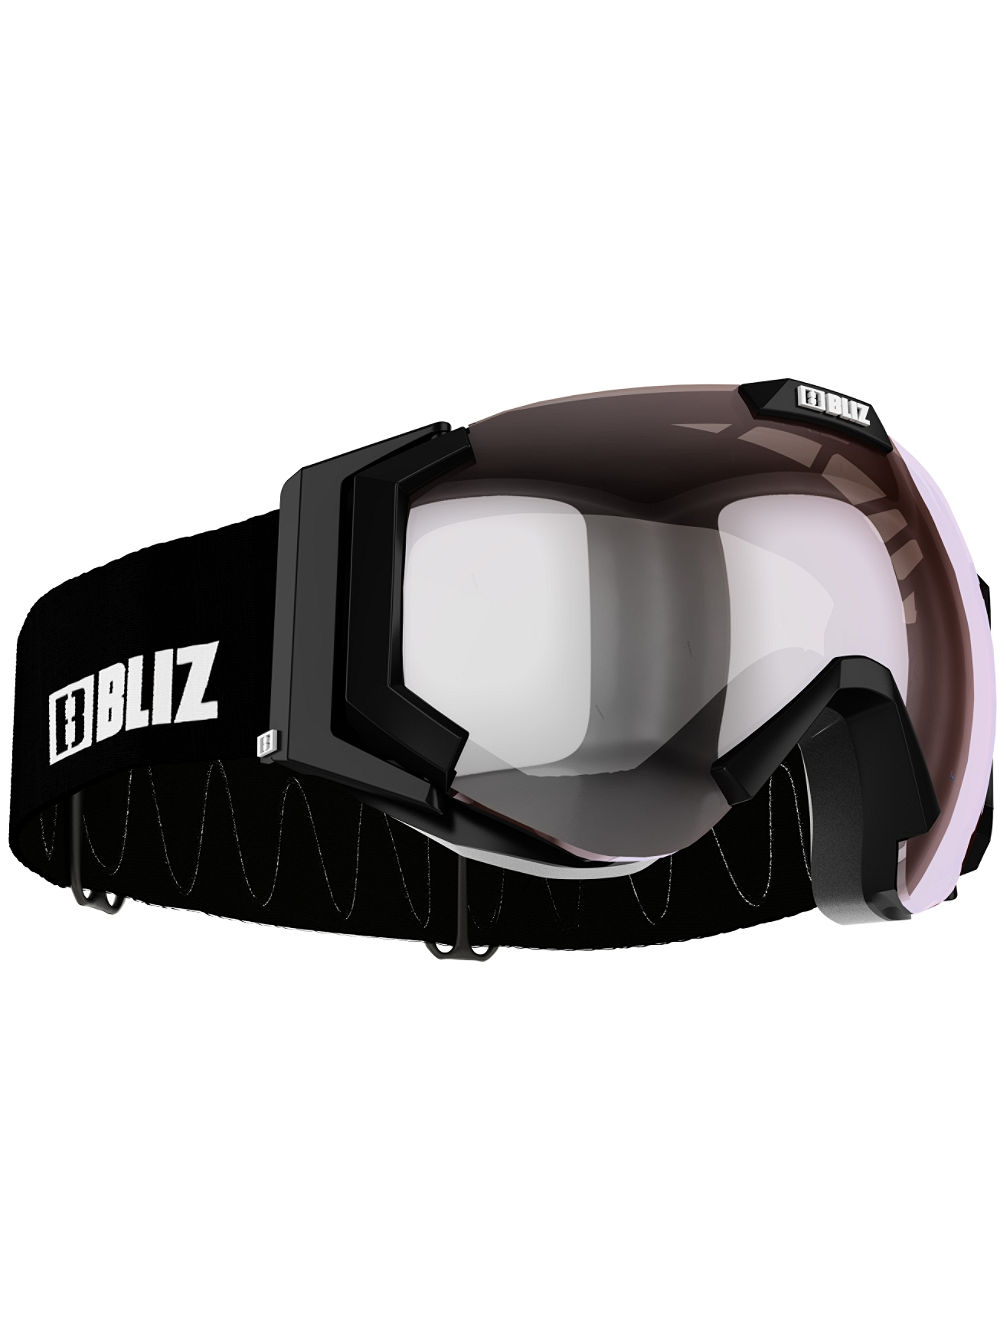 bliz-protective-sports-gear-carver-junior-black-youth